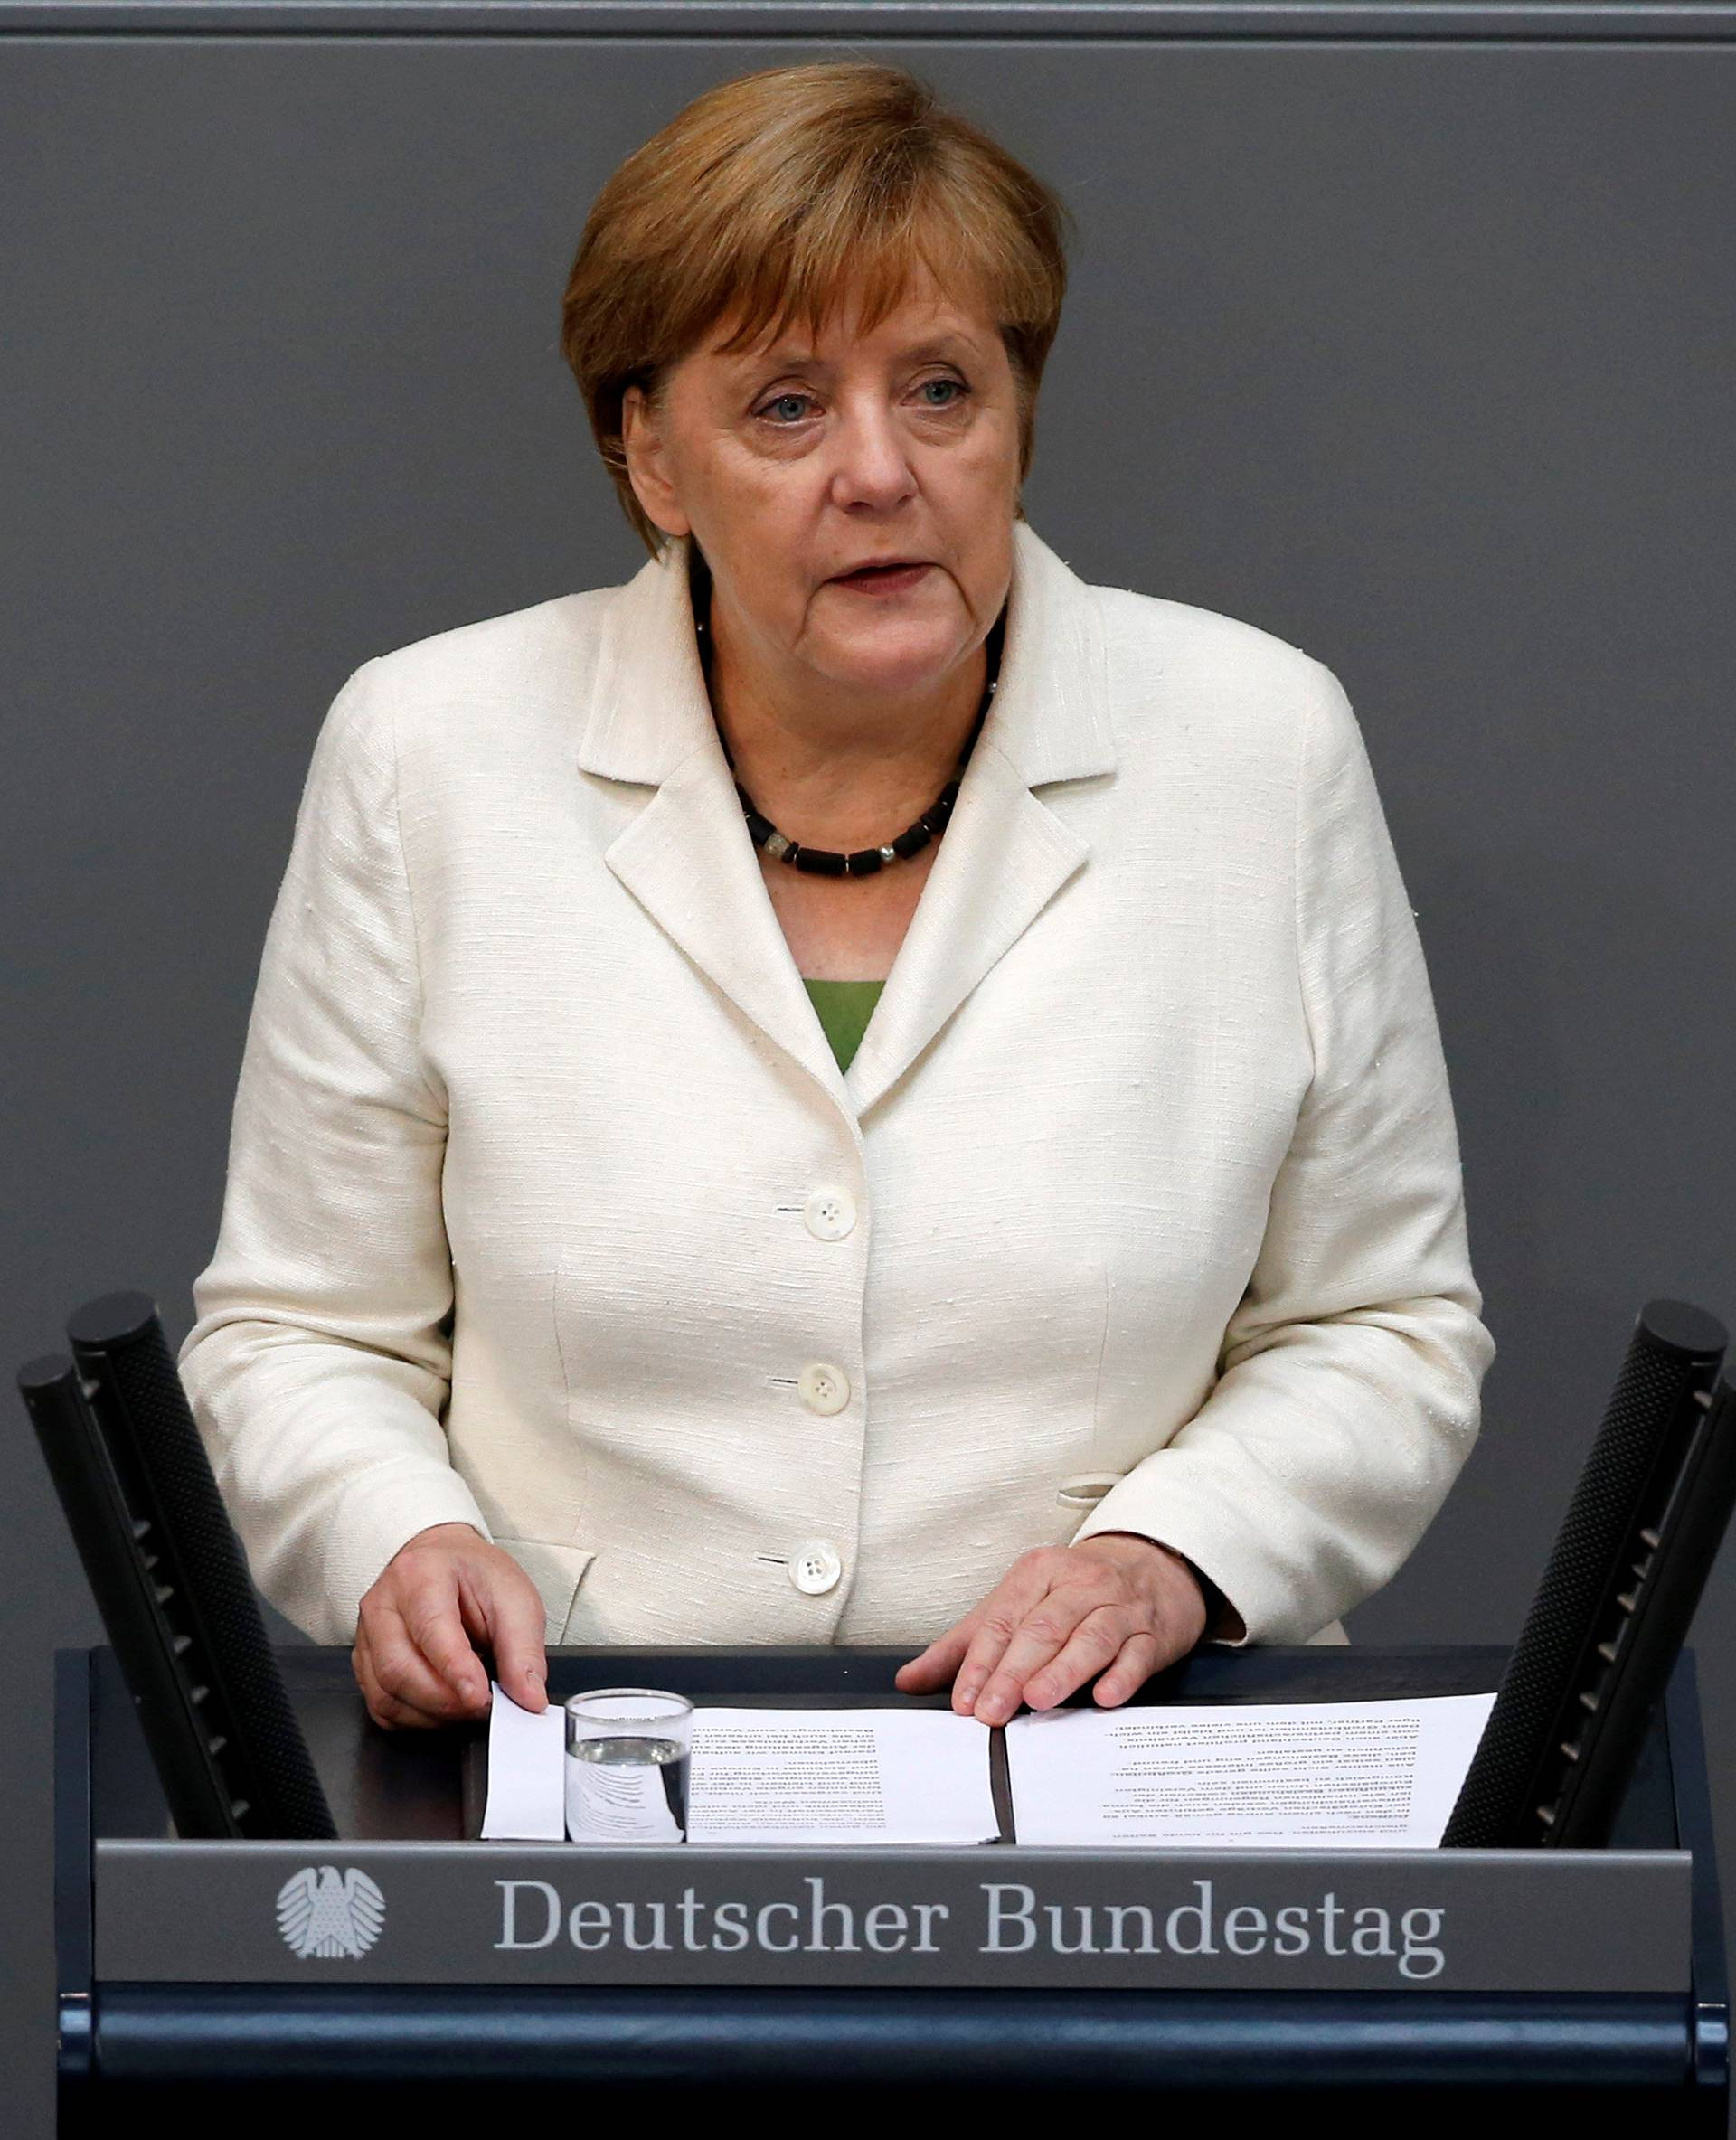 German Chancellor Merkel delivers a government declaration on the consequences of the Brexit vote at the lower house of parliament Bundestag in Berlin